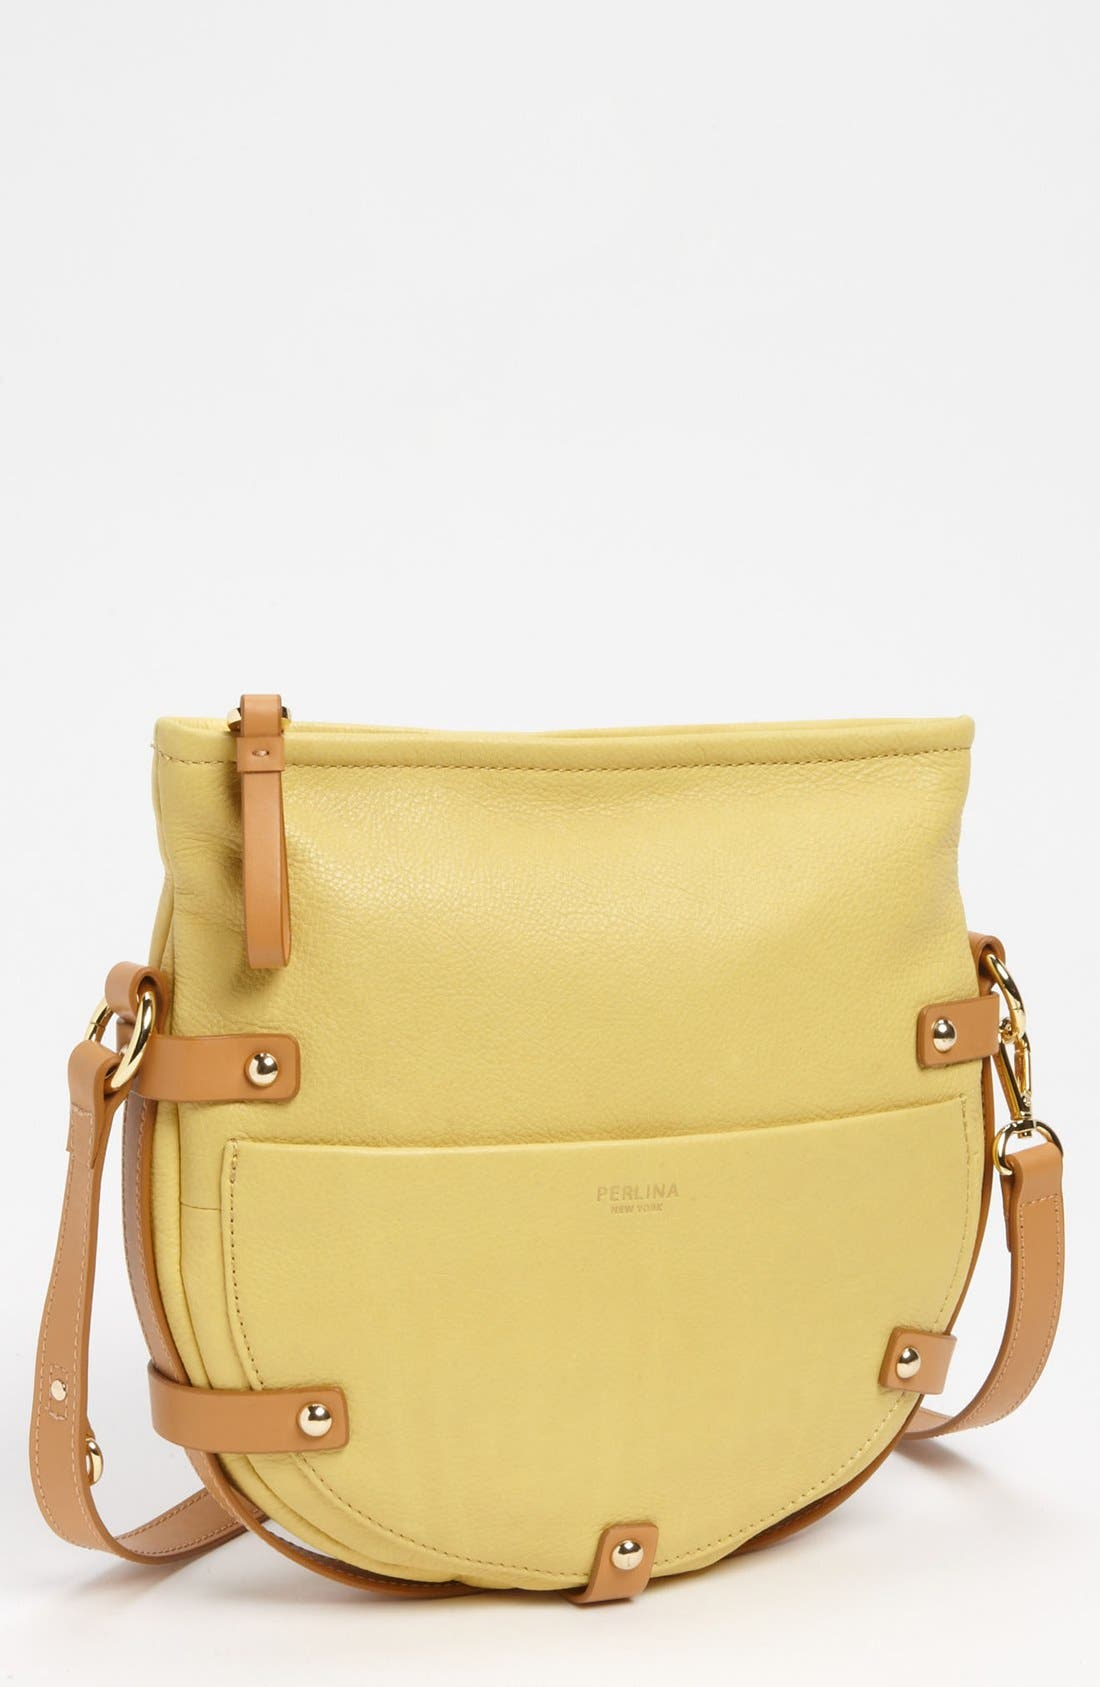 Alternate Image 1 Selected - Perlina 'Lucia' Crossbody Bag